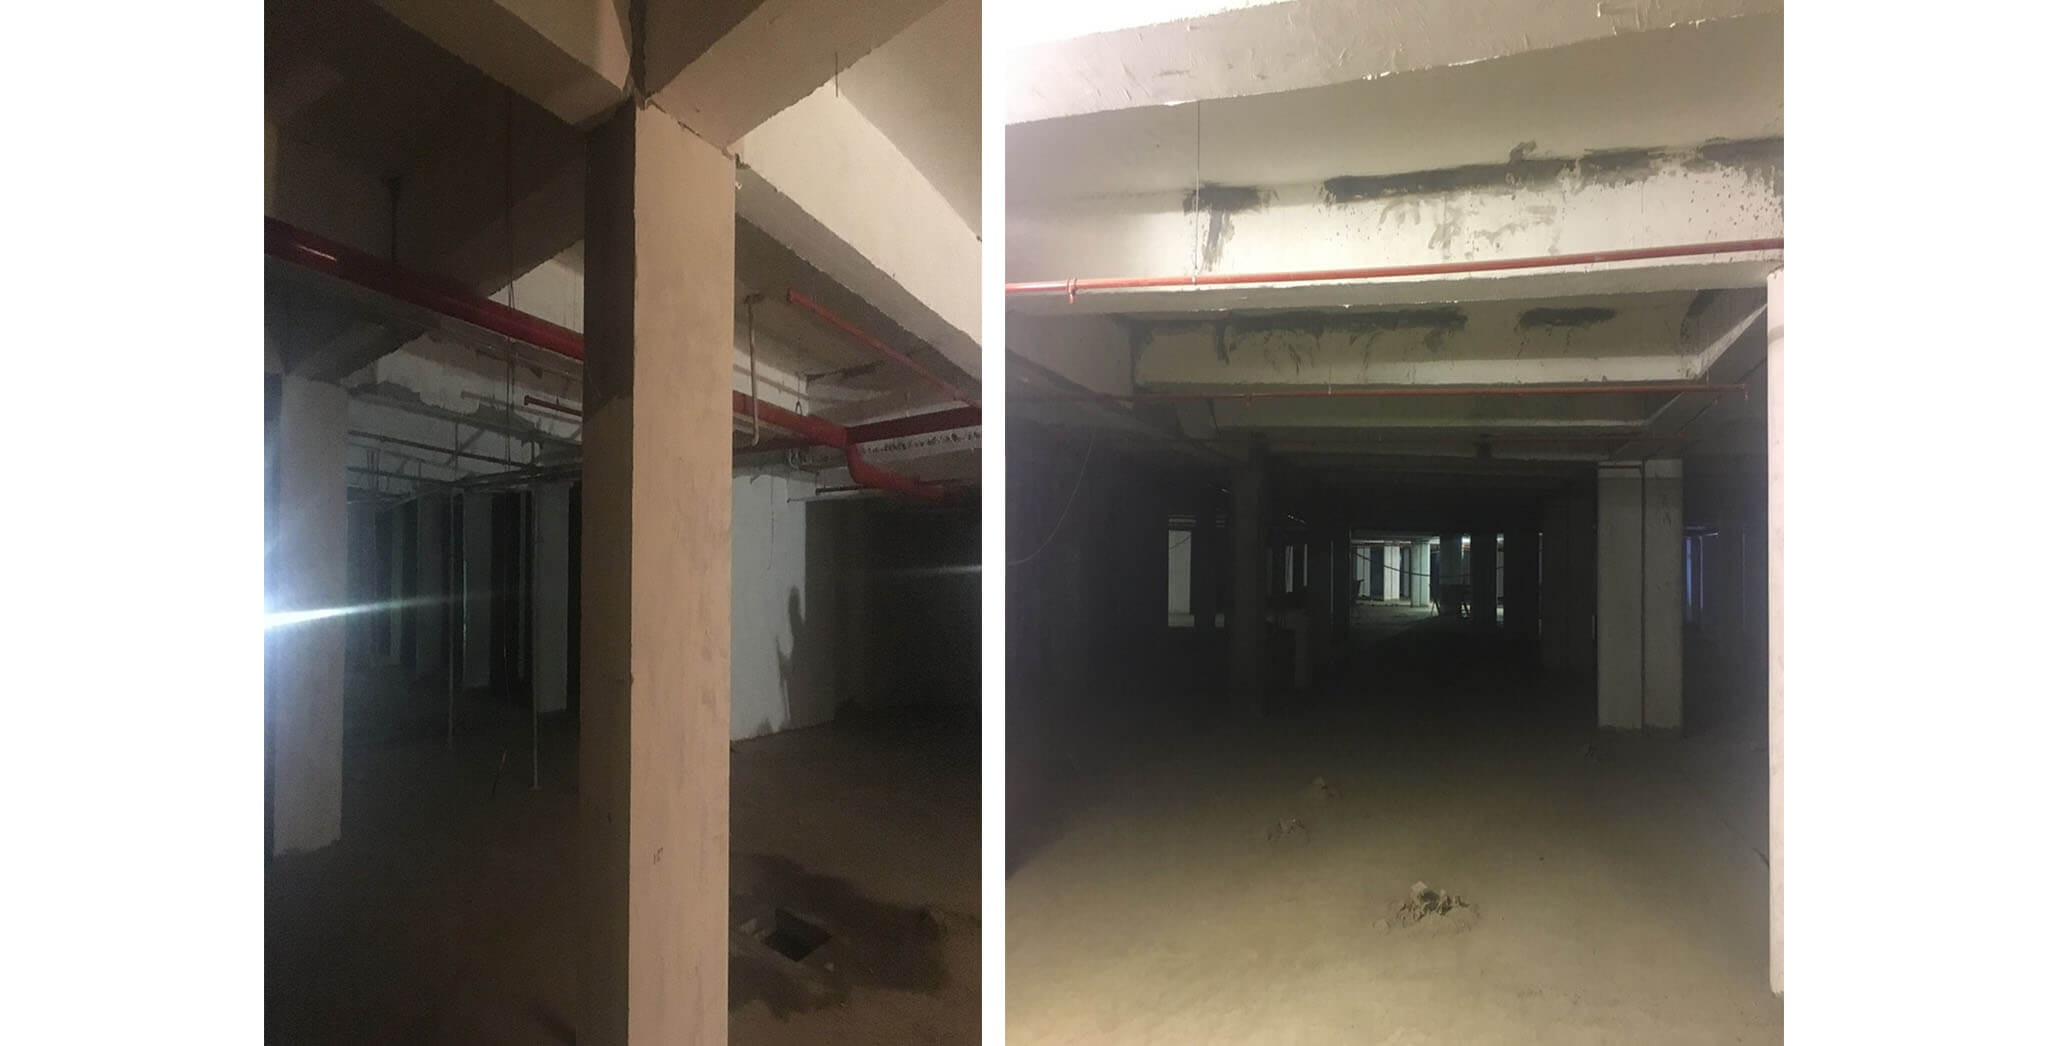 Mar 2018 - Crimson block—Upper basement fire work progress